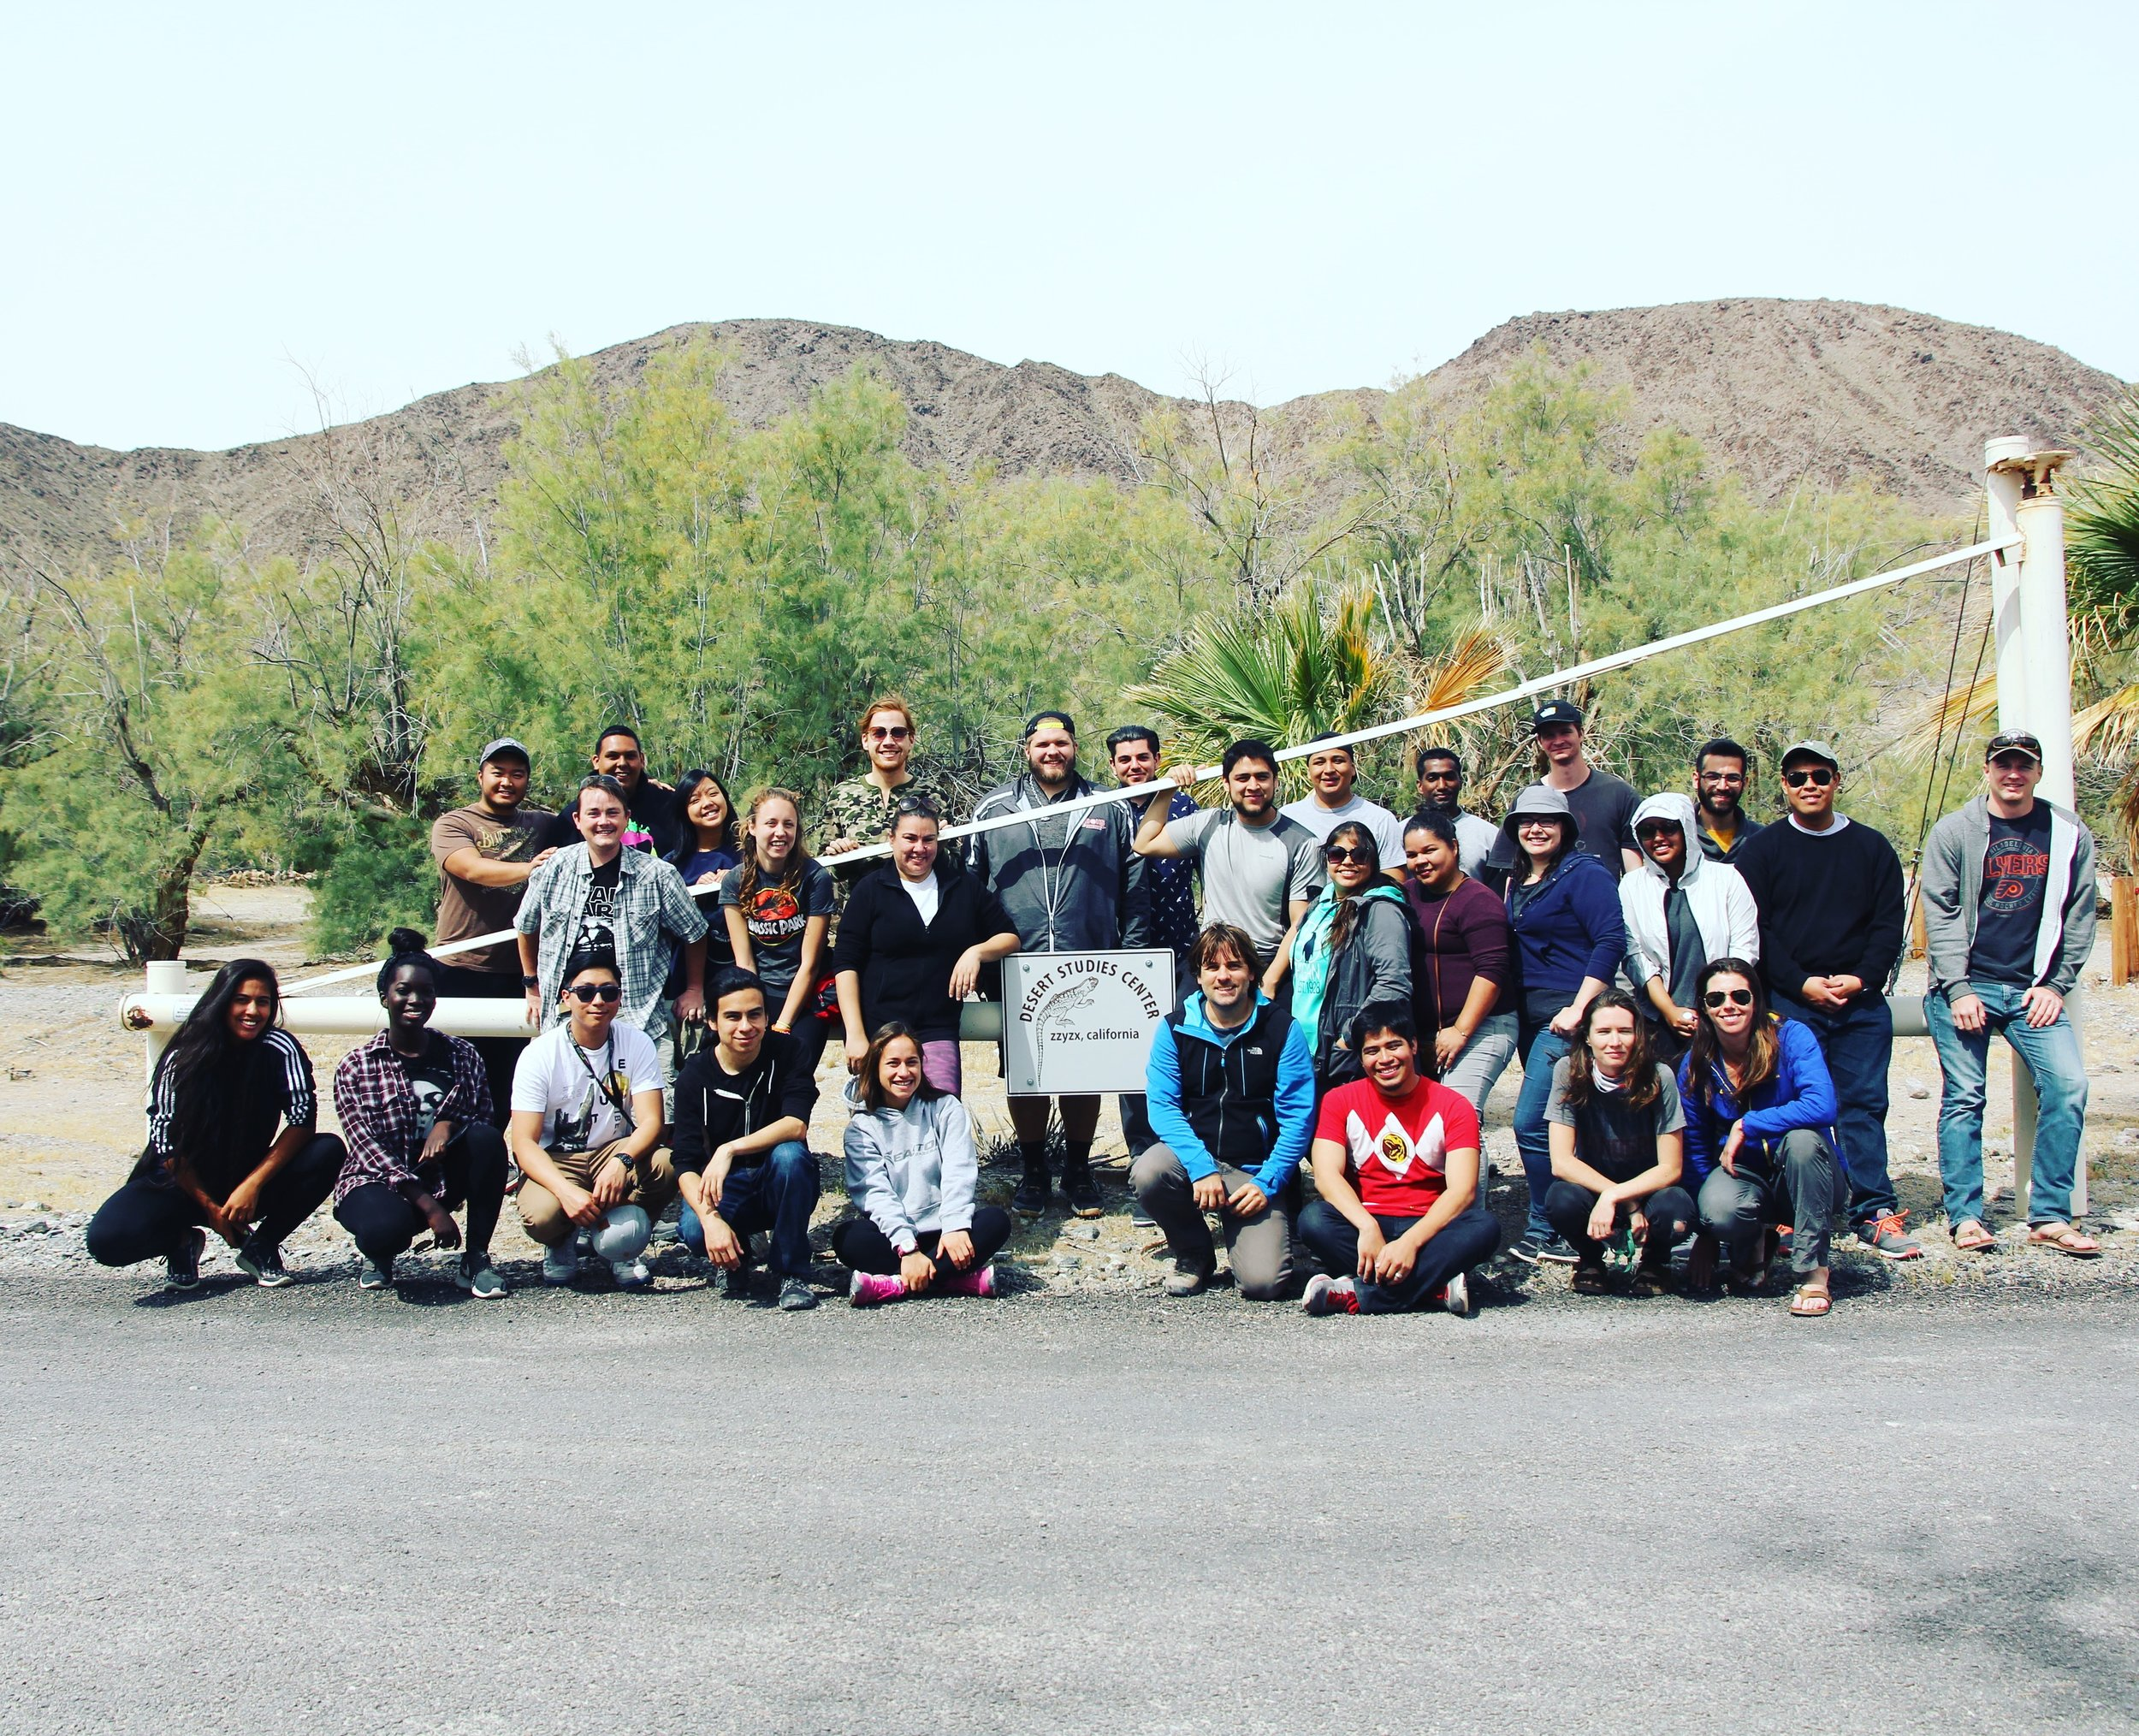 2017 Ornithology class on our weekend retreat to the Desert Studies Center, Zzyzx, California